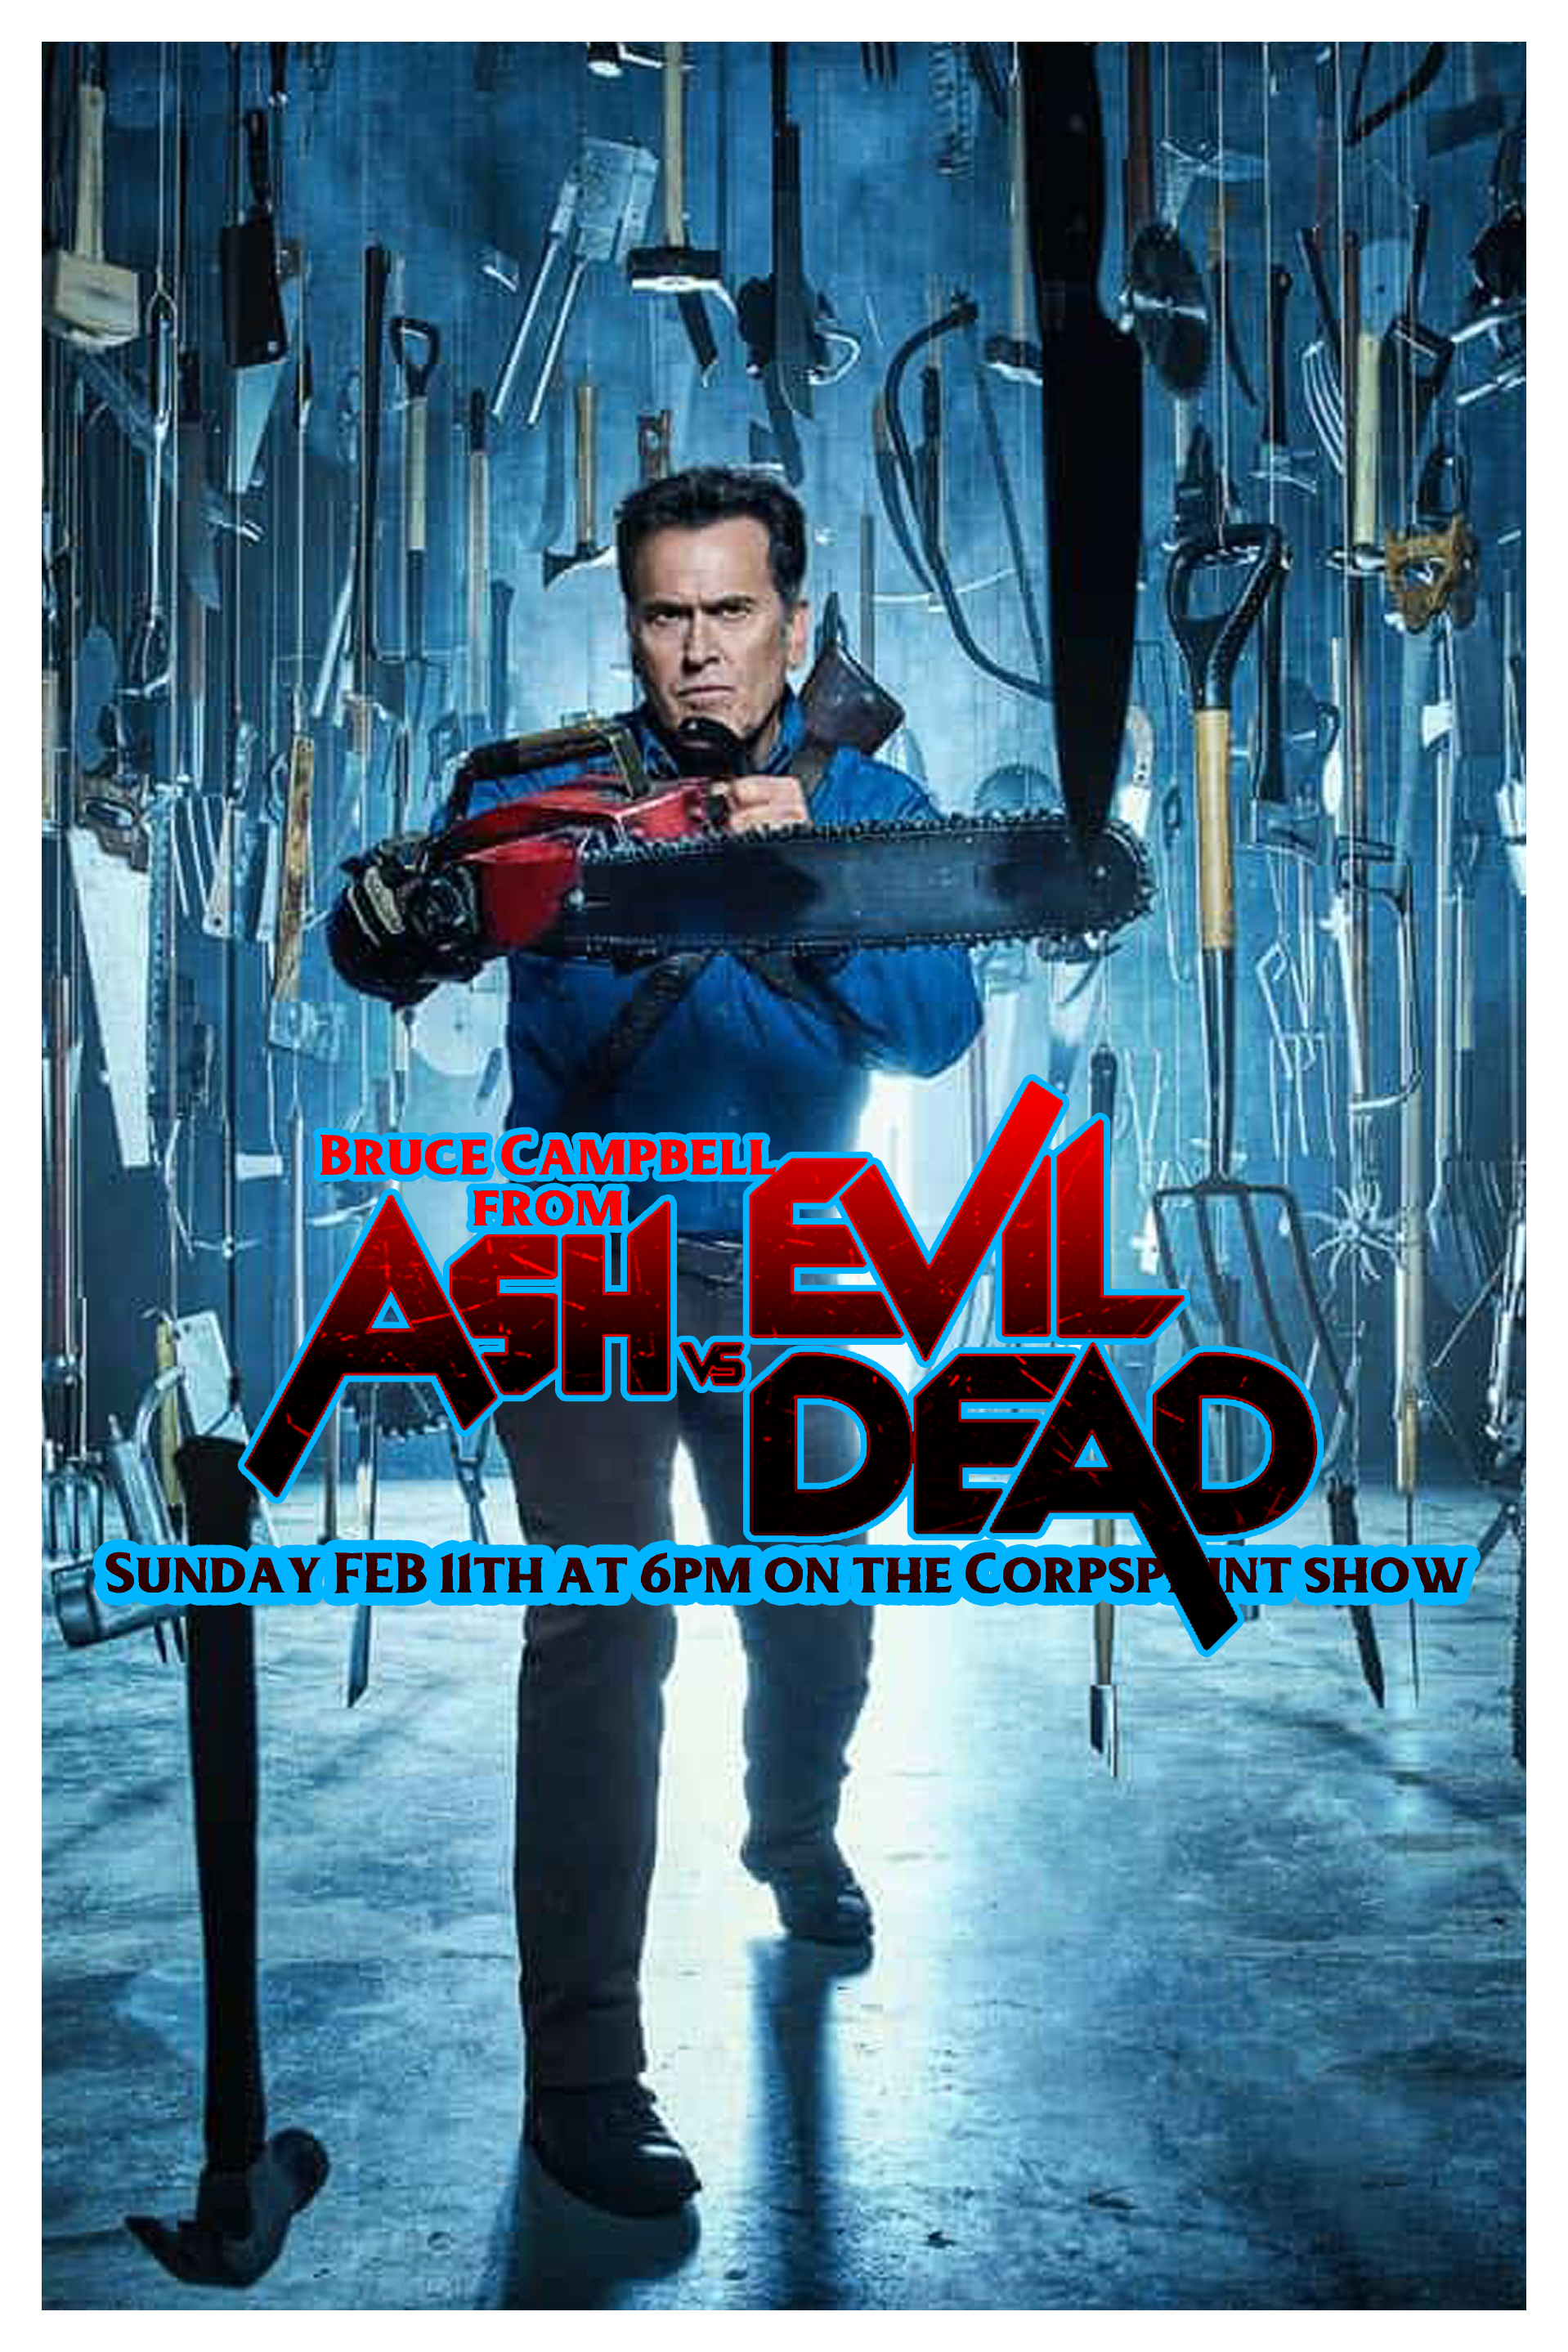 Feb 11th - Bruce Campbell